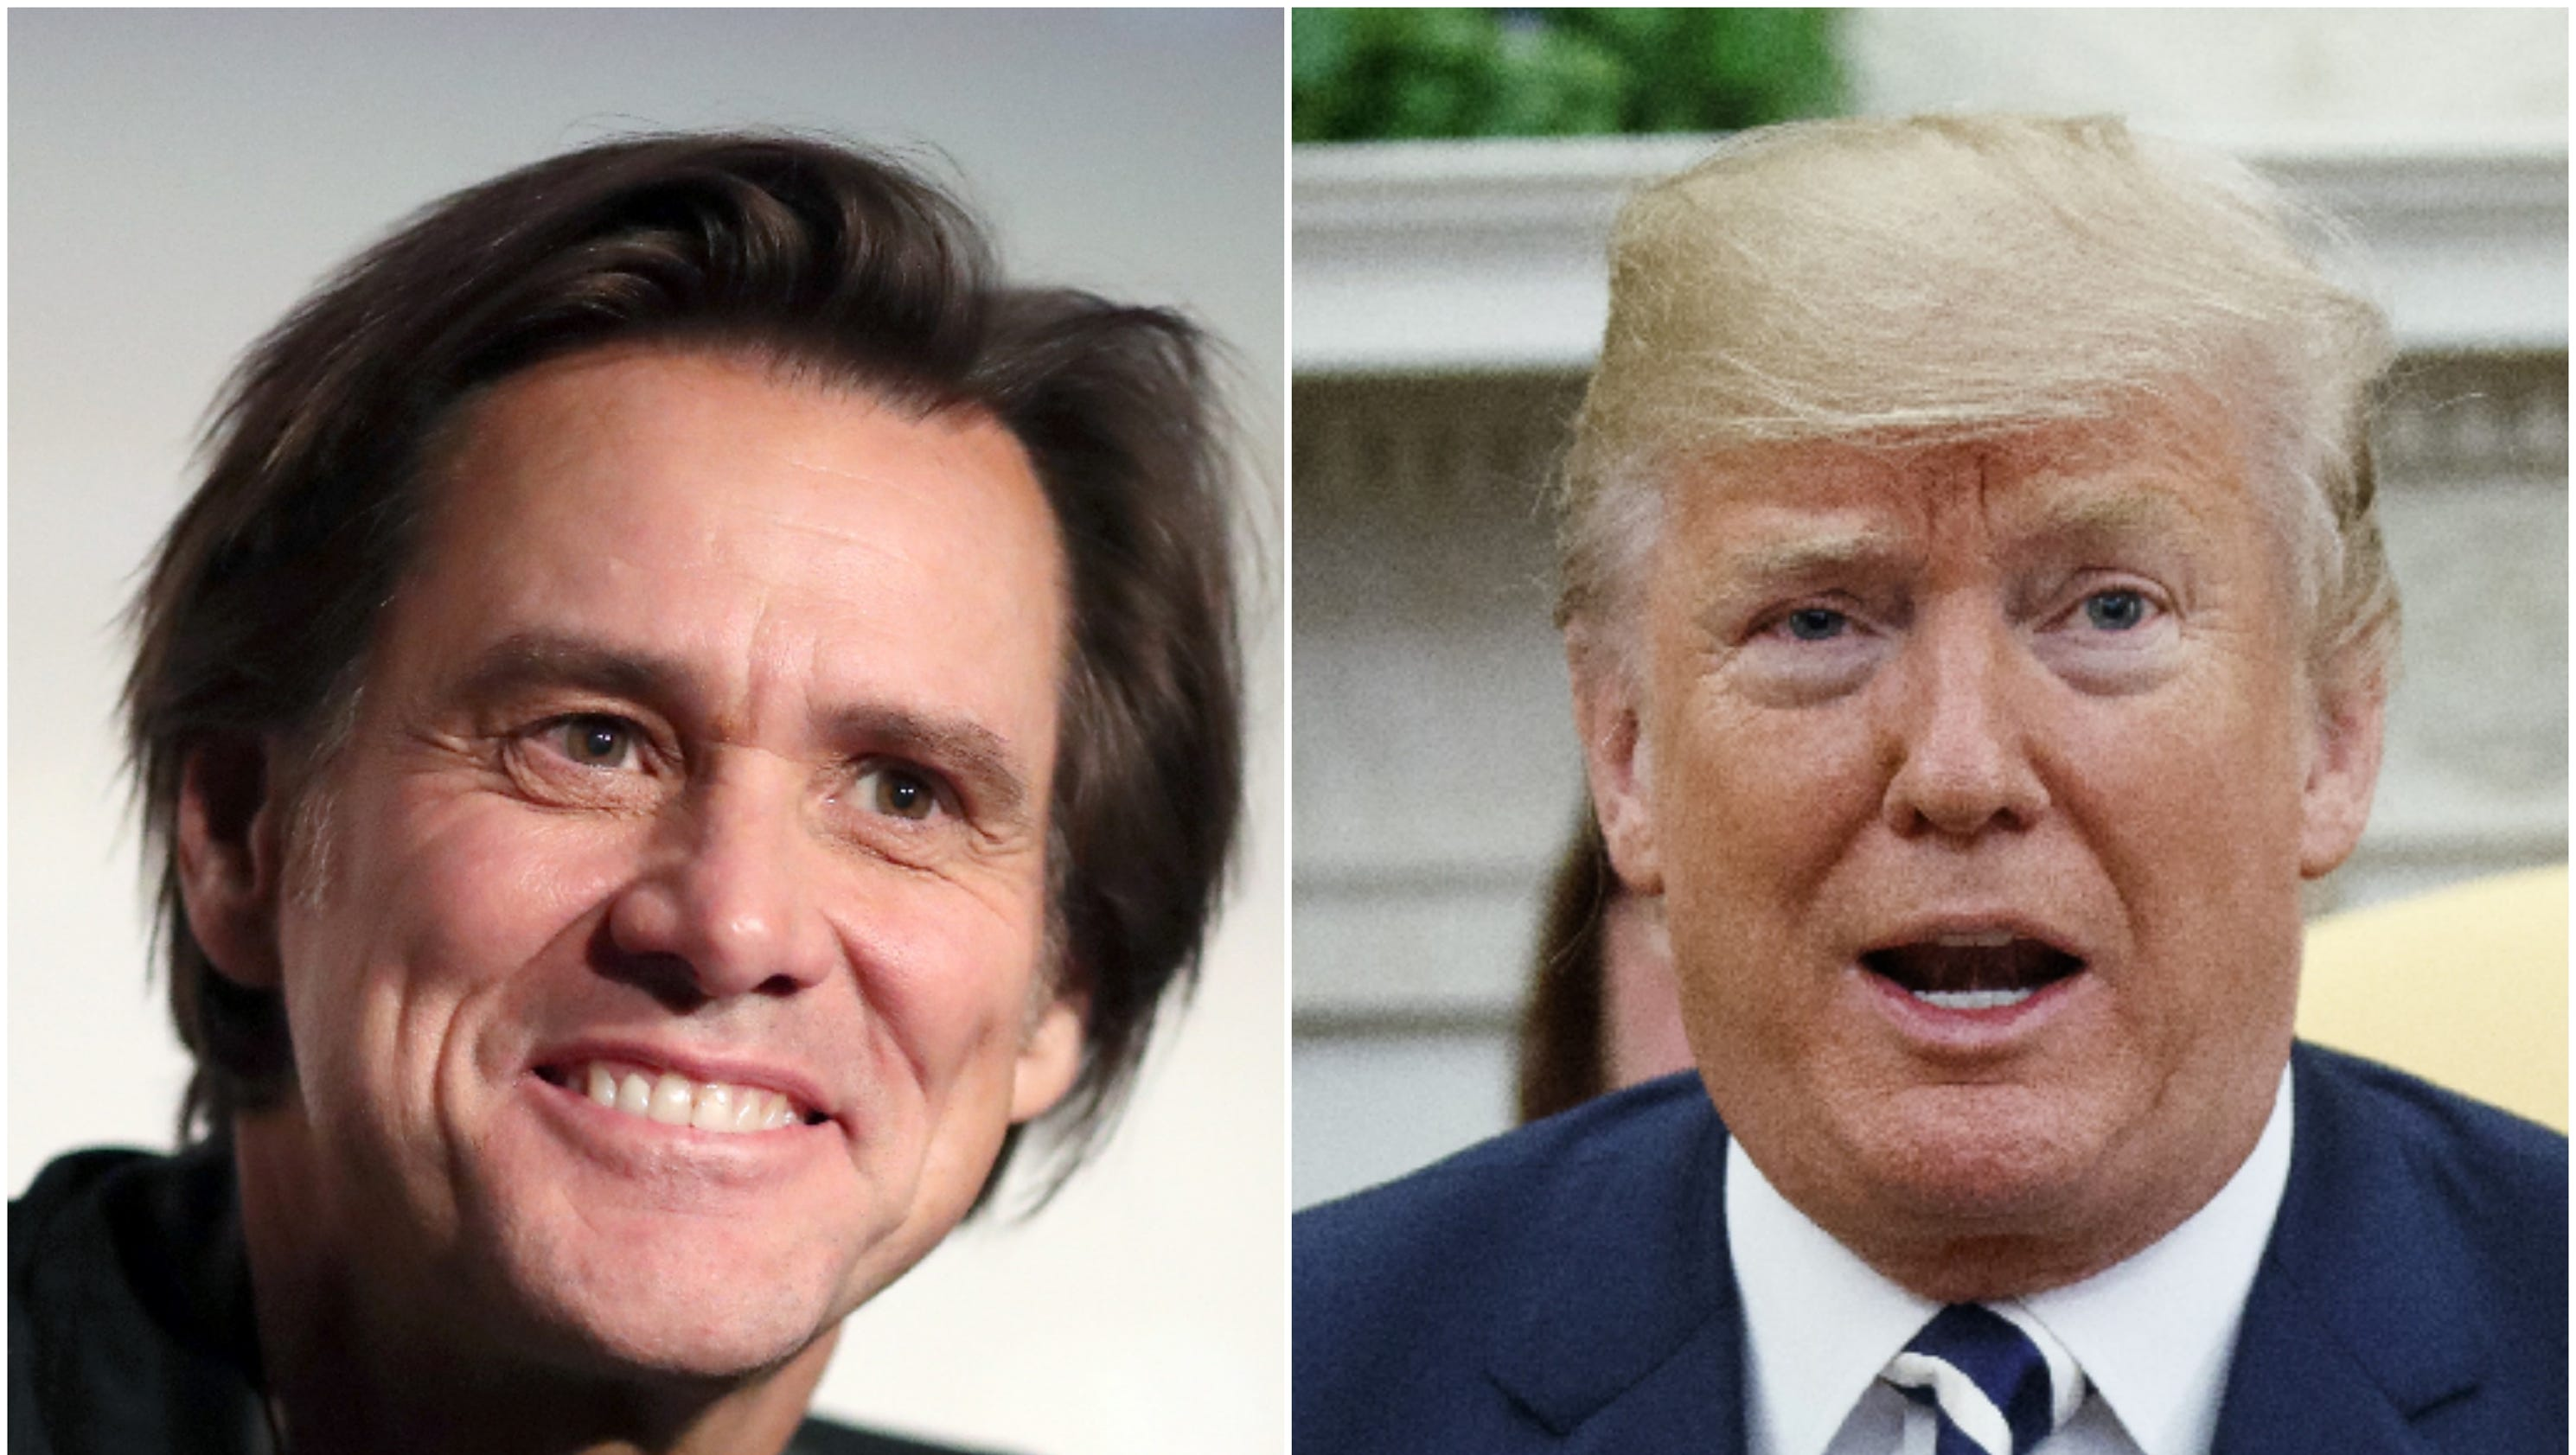 Jim Carrey unveils latest painting: President Trump as the 'Wicked Witch of the West Wing'